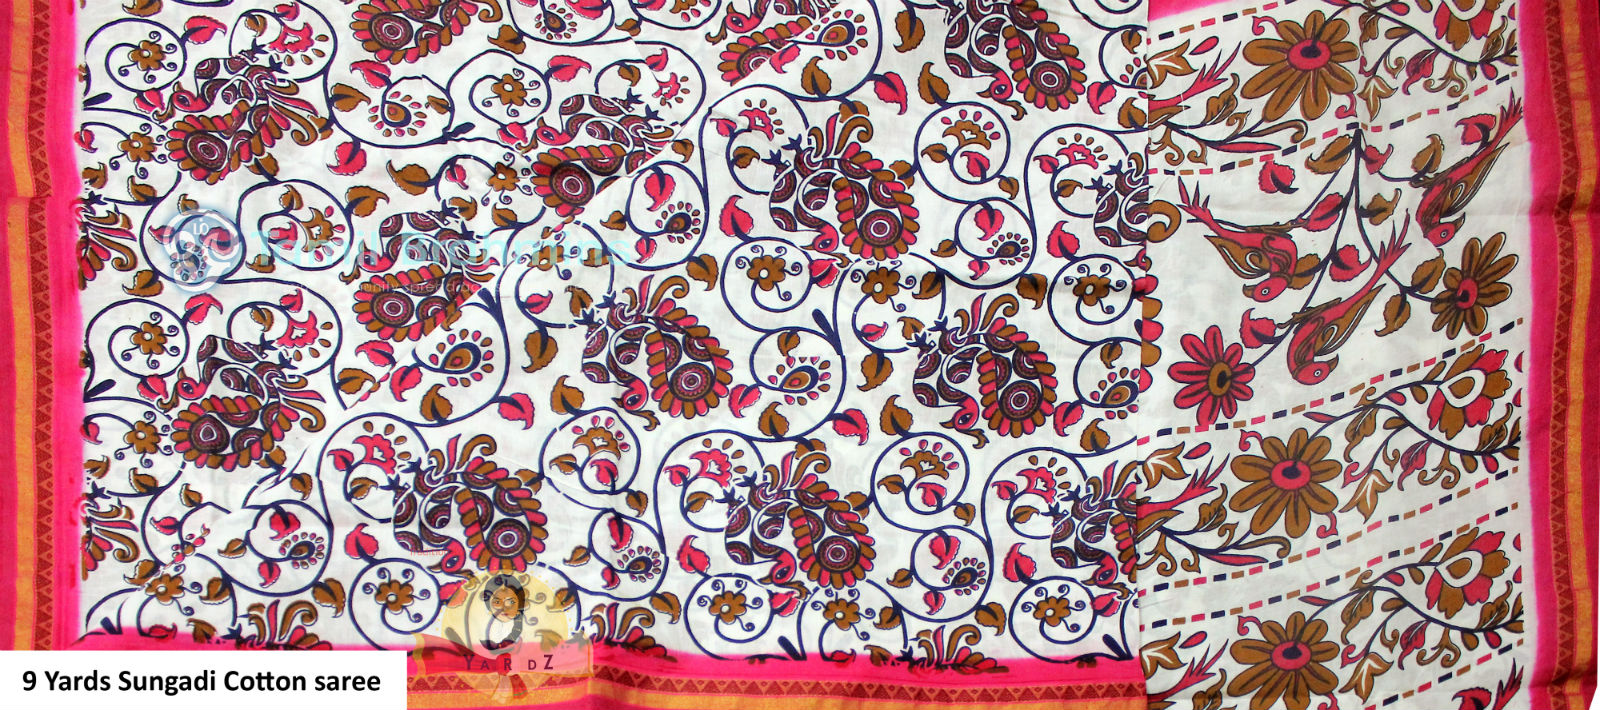 9-yards-sungudi-cotton-jpg.7058 9 Yardz - Let's go the Madisar Style